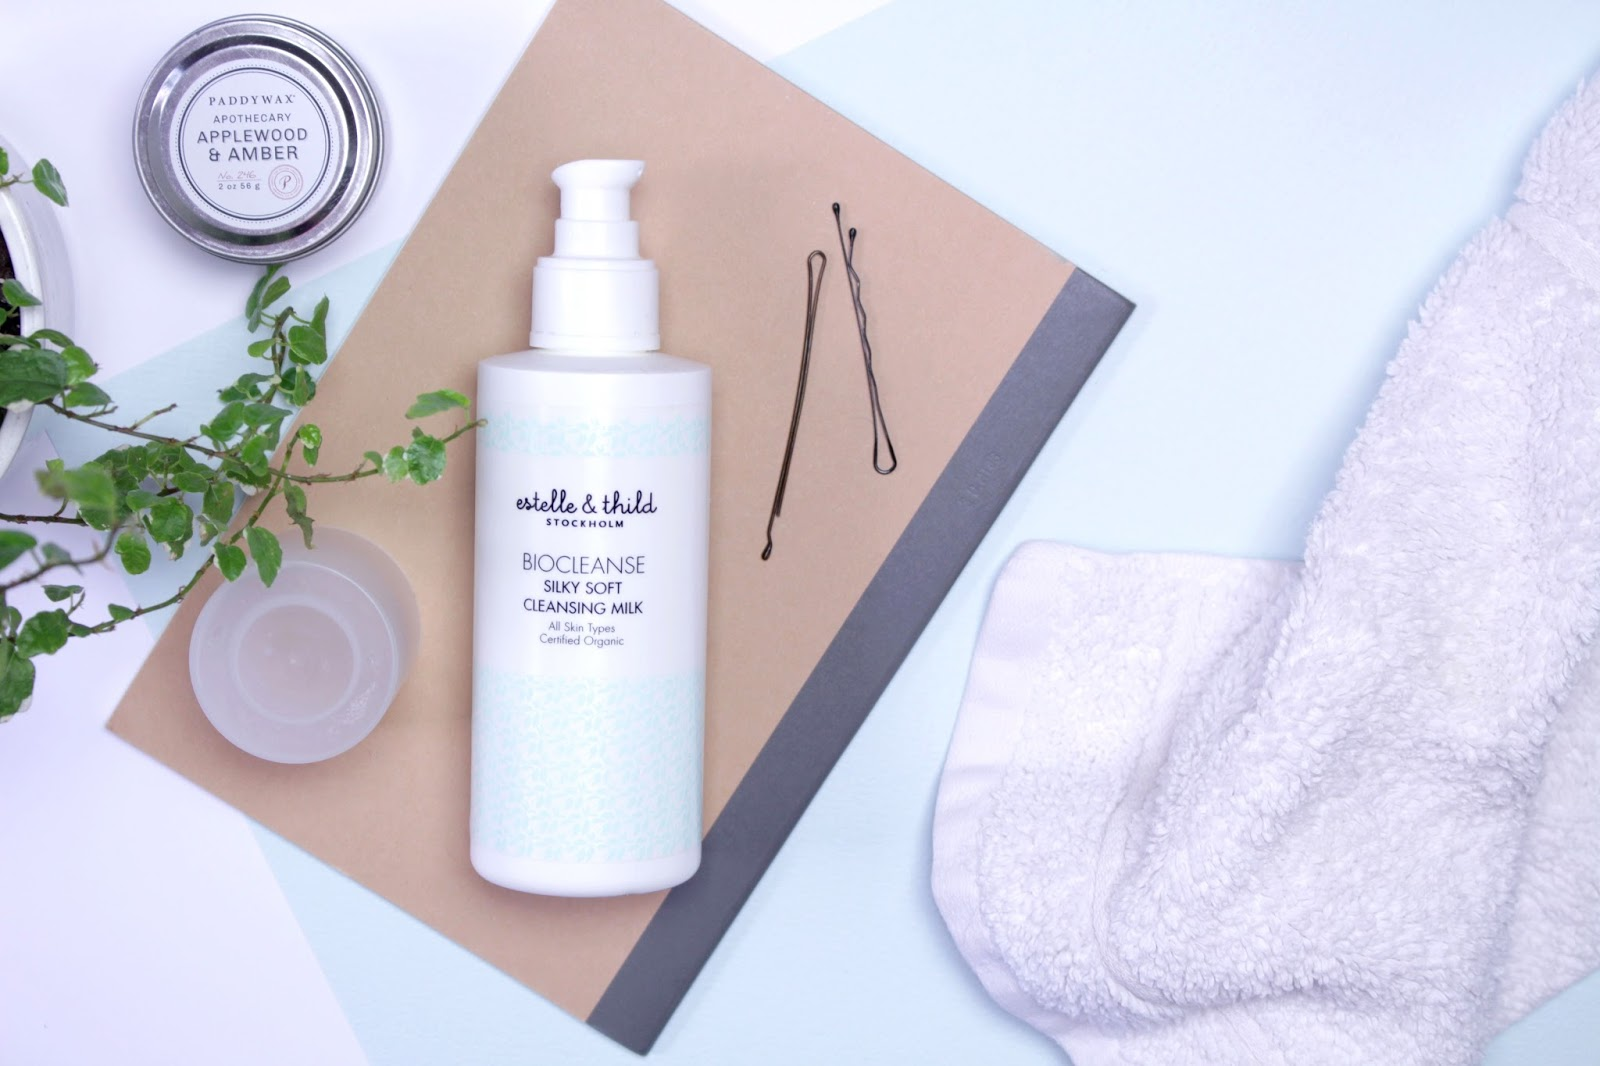 Silky Soft Cleansing Milk Estelle & Thild